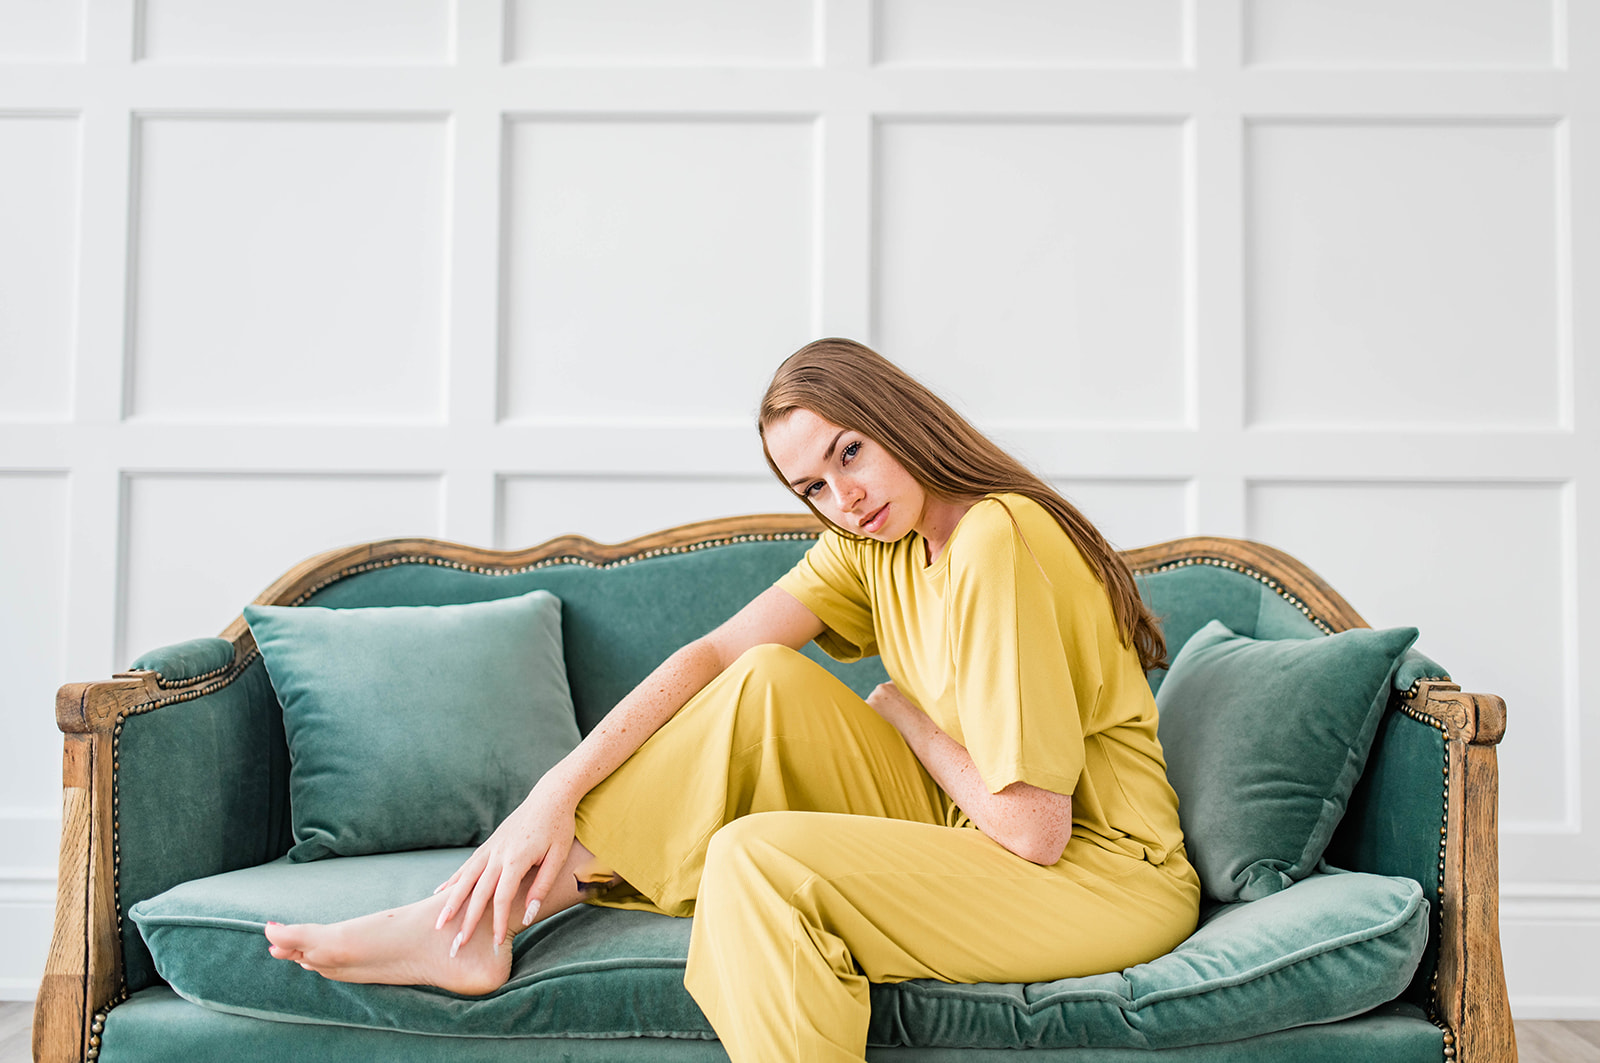 Maylyn & Co.'s Plant-Based Sleepwear is Comfortable, Durable and Sustainable